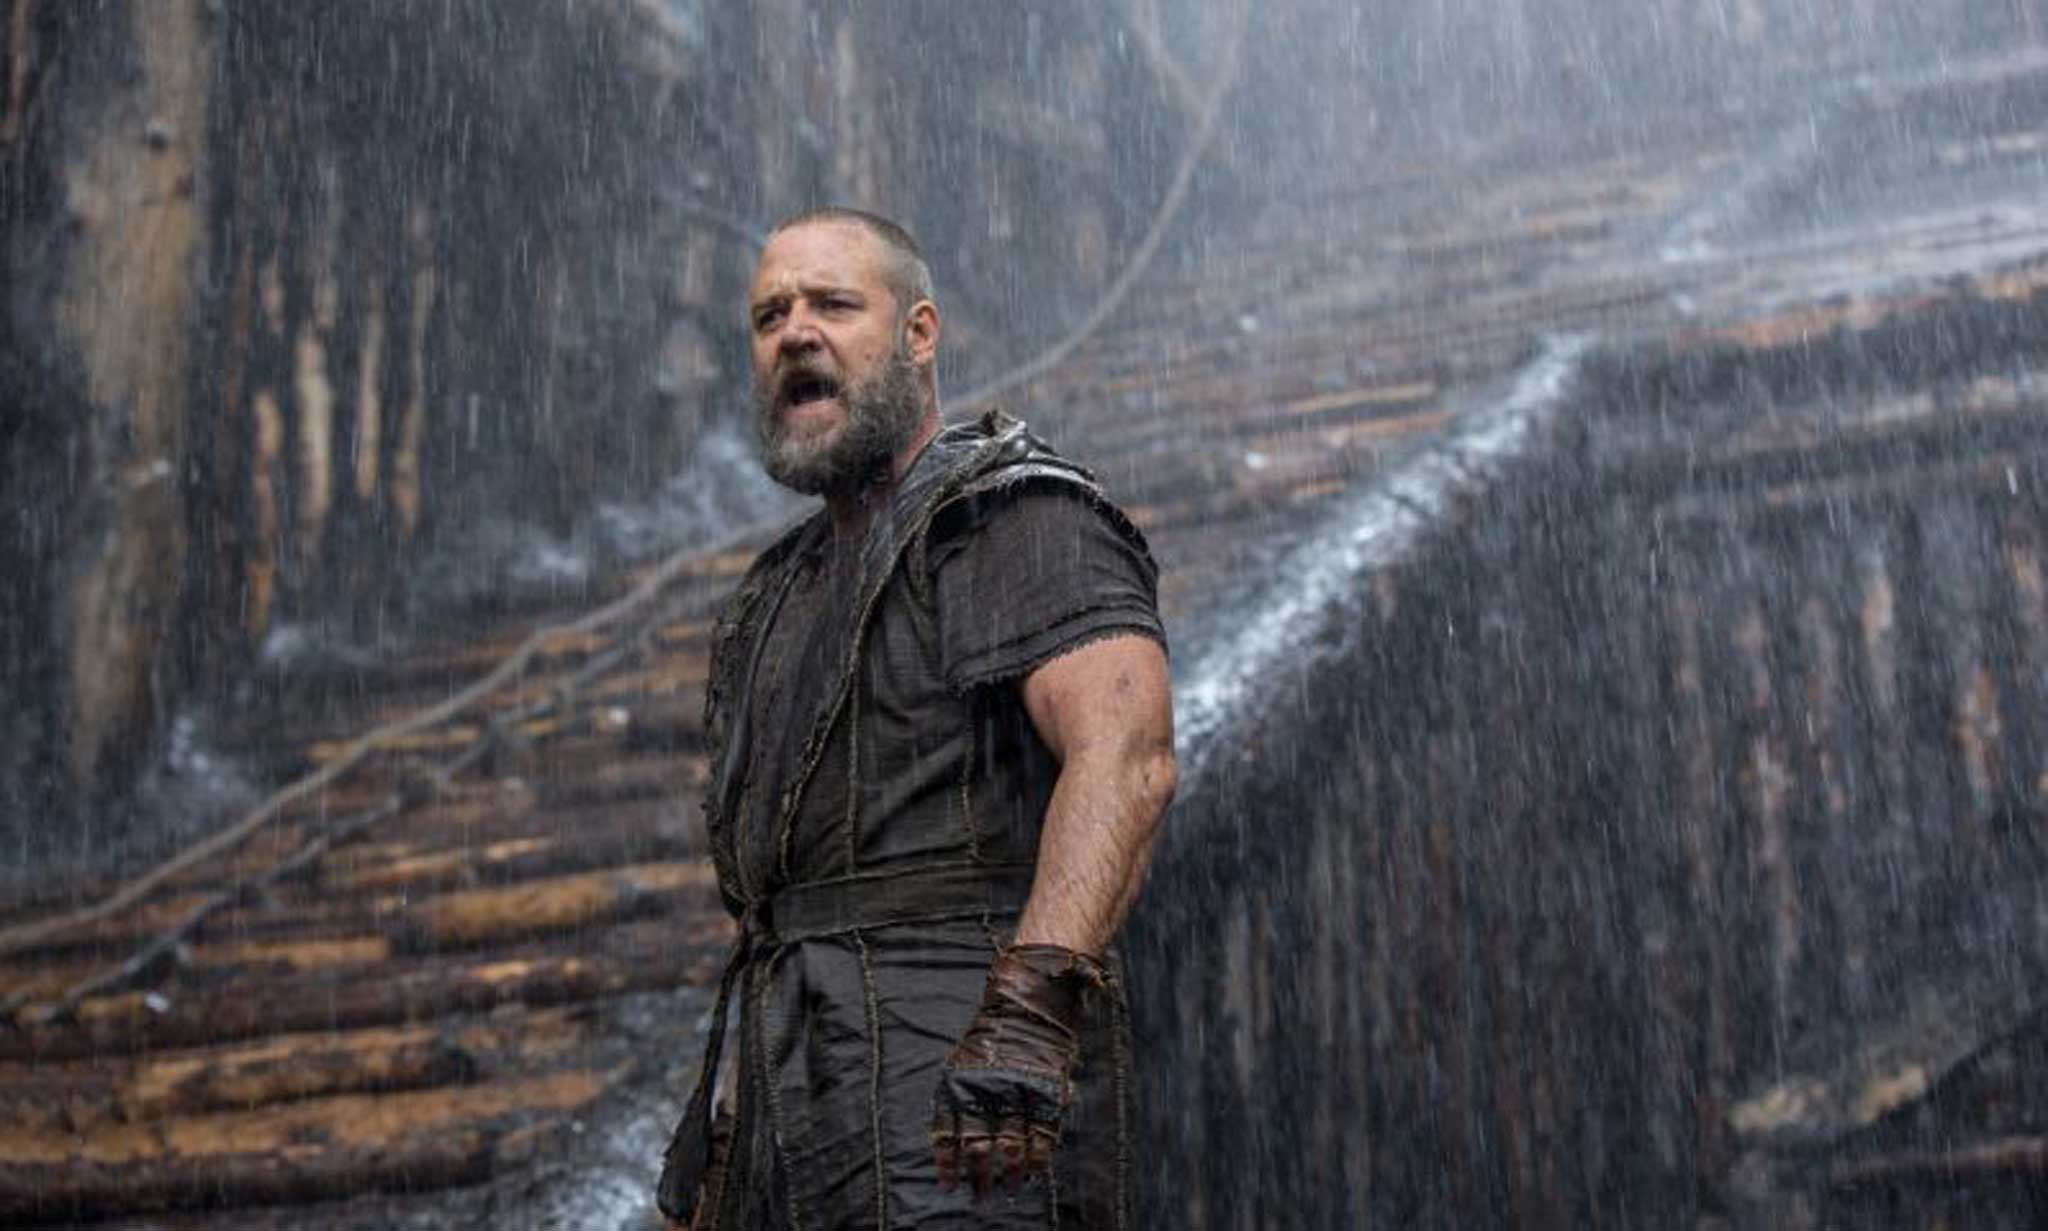 Noah screening cancelled due to flooding